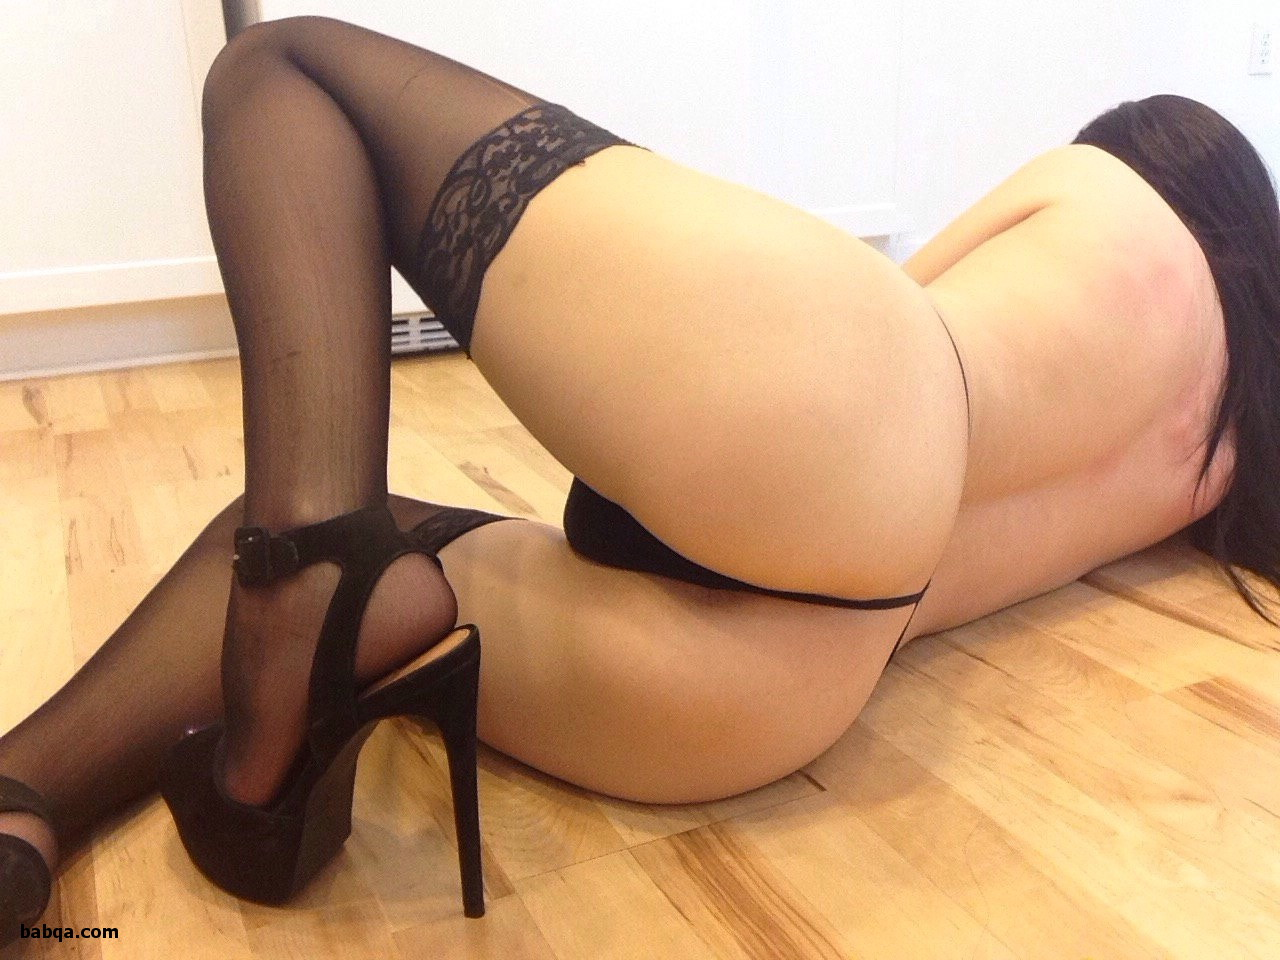 erotic online shop and sexy women in stockings and suspenders